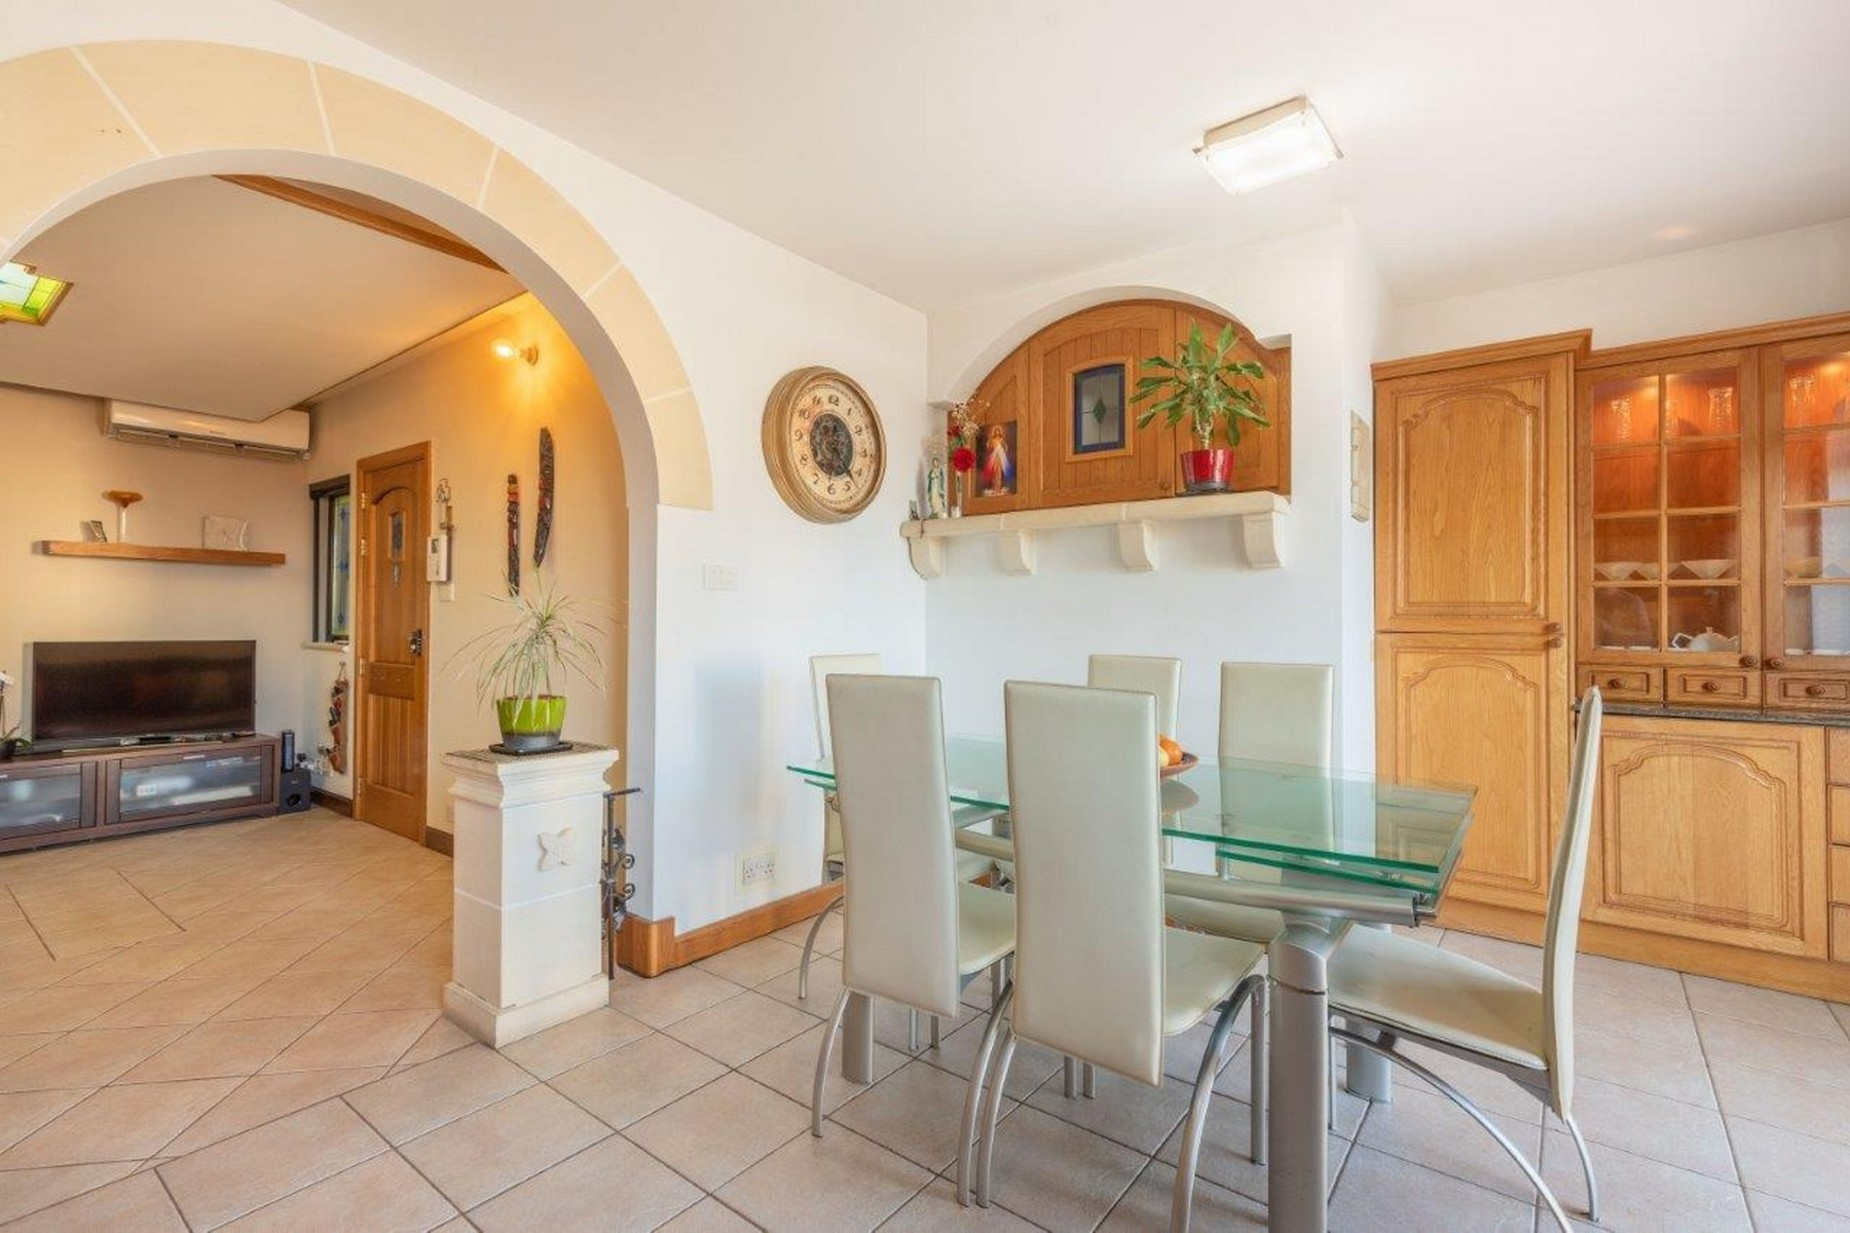 3 bed Apartment For Sale in Attard, Attard - thumb 4